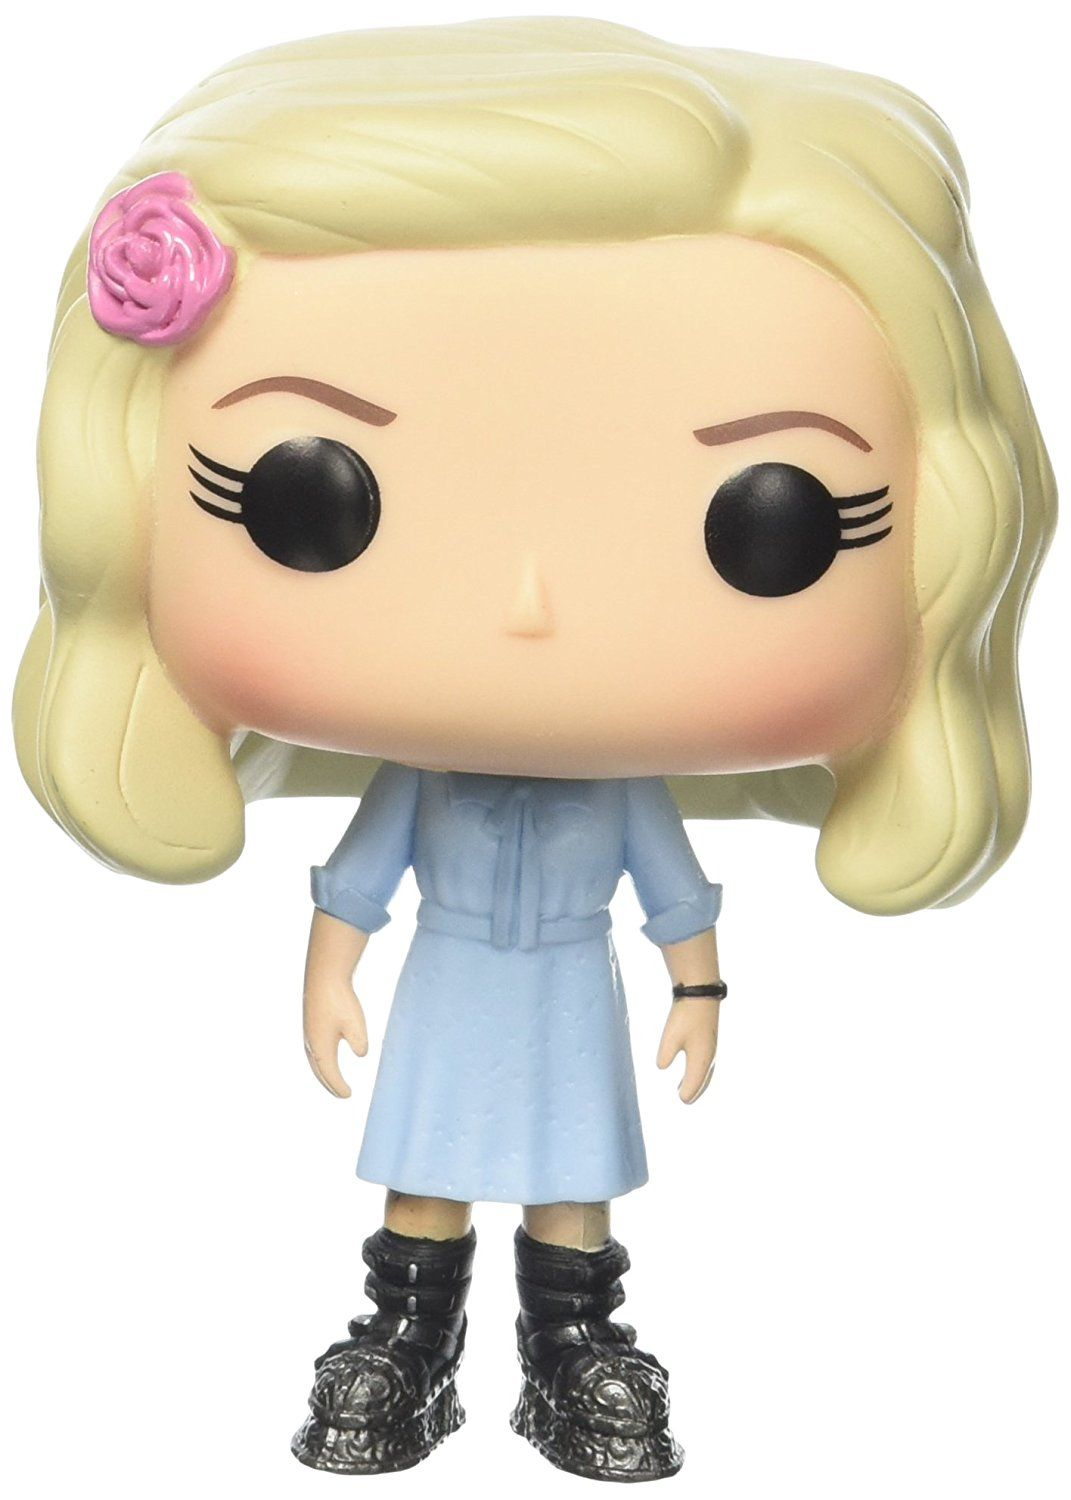 Funko - Figurine Miss Peregrines - Emma Bloom Pop 10cm - 0849803077419   Amazon.fr  Jeux et Jouets e94d45d9750